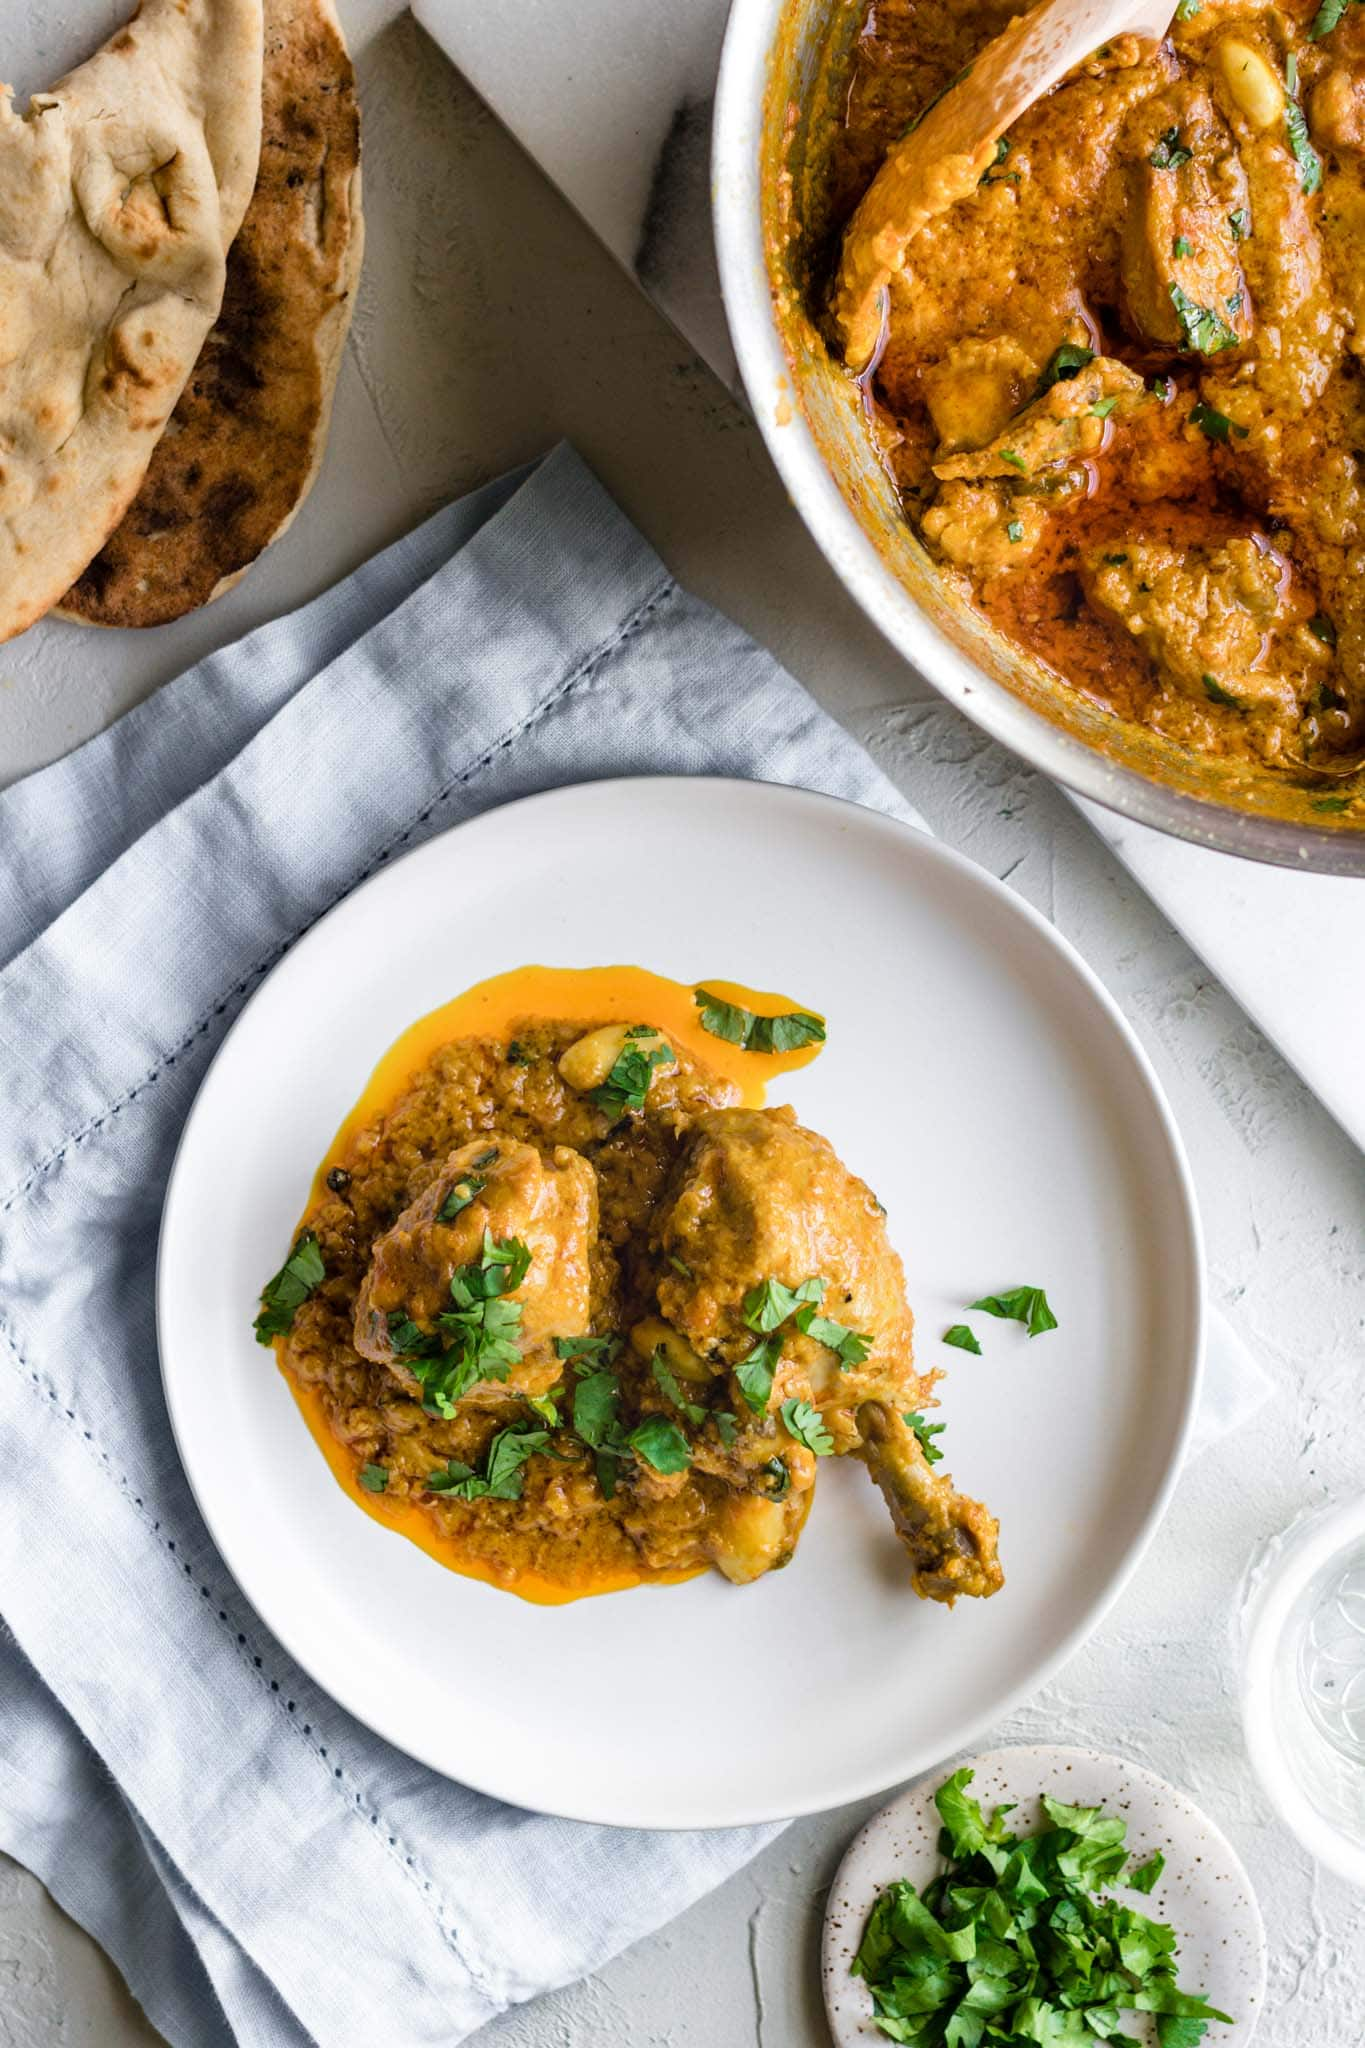 Chicken Korma on a white plate garnished with cilantro and almonds